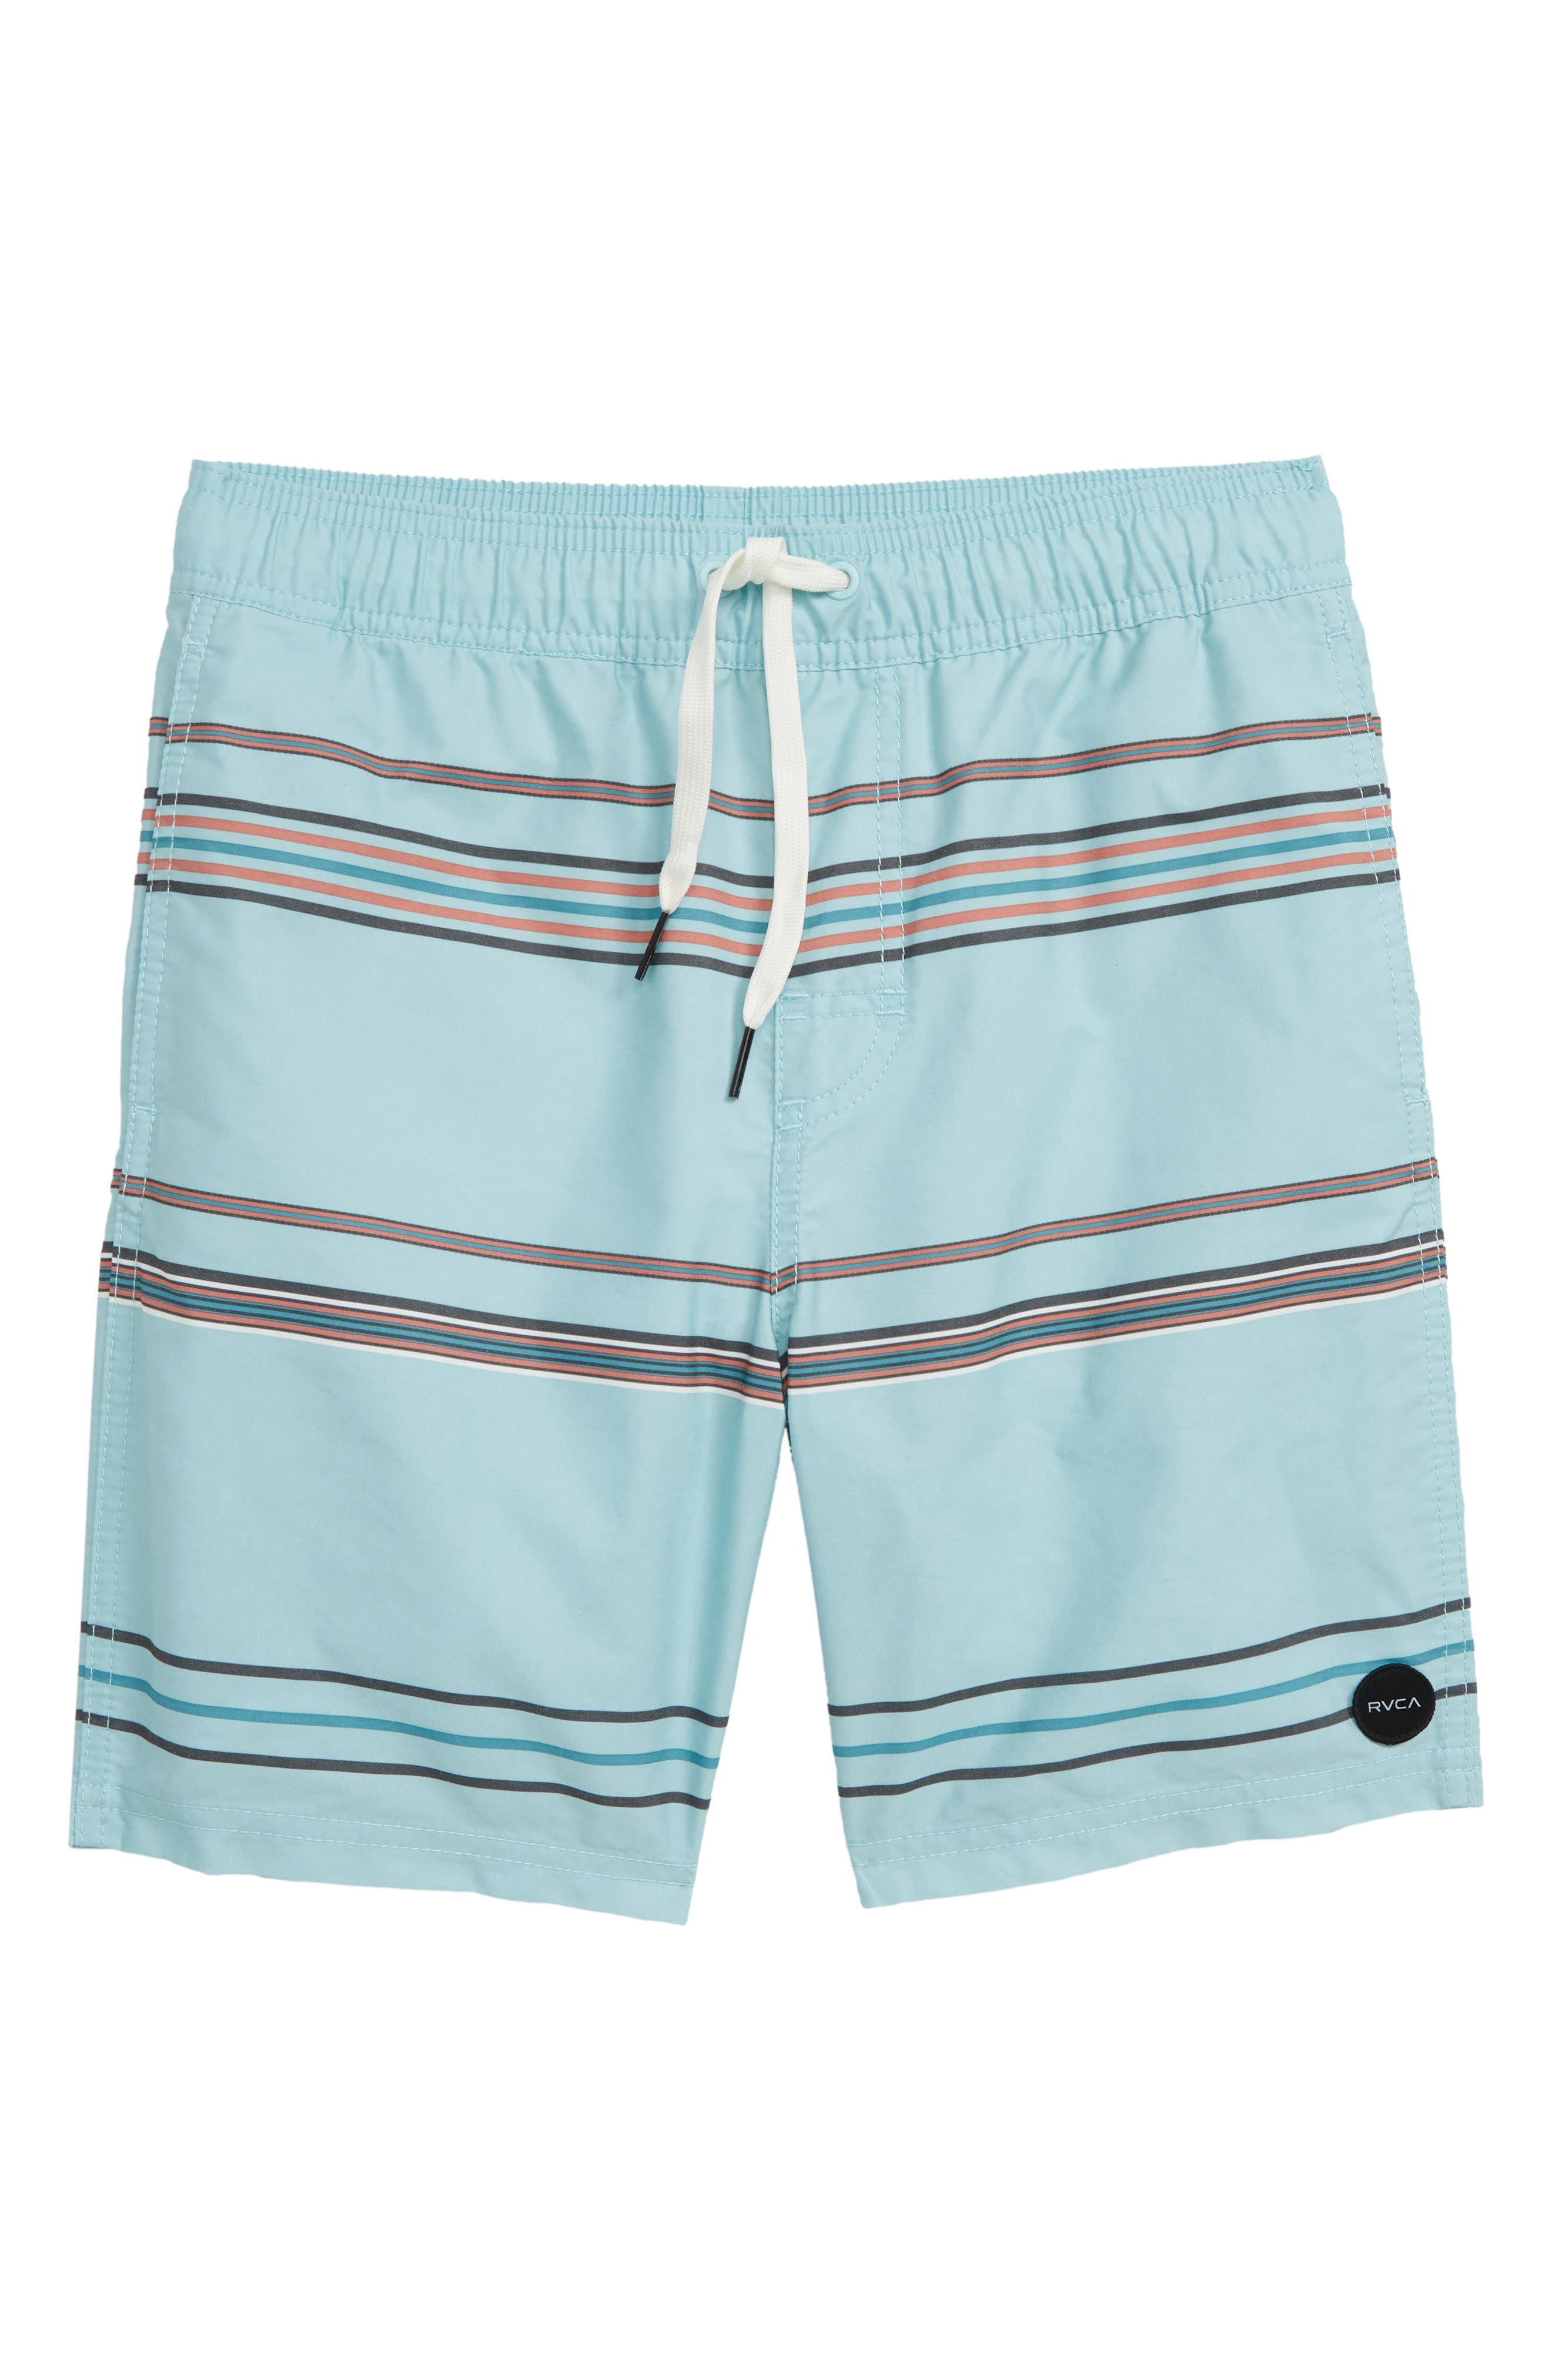 RVCA Shattered Board Shorts, Main, color, ETHER BLUE